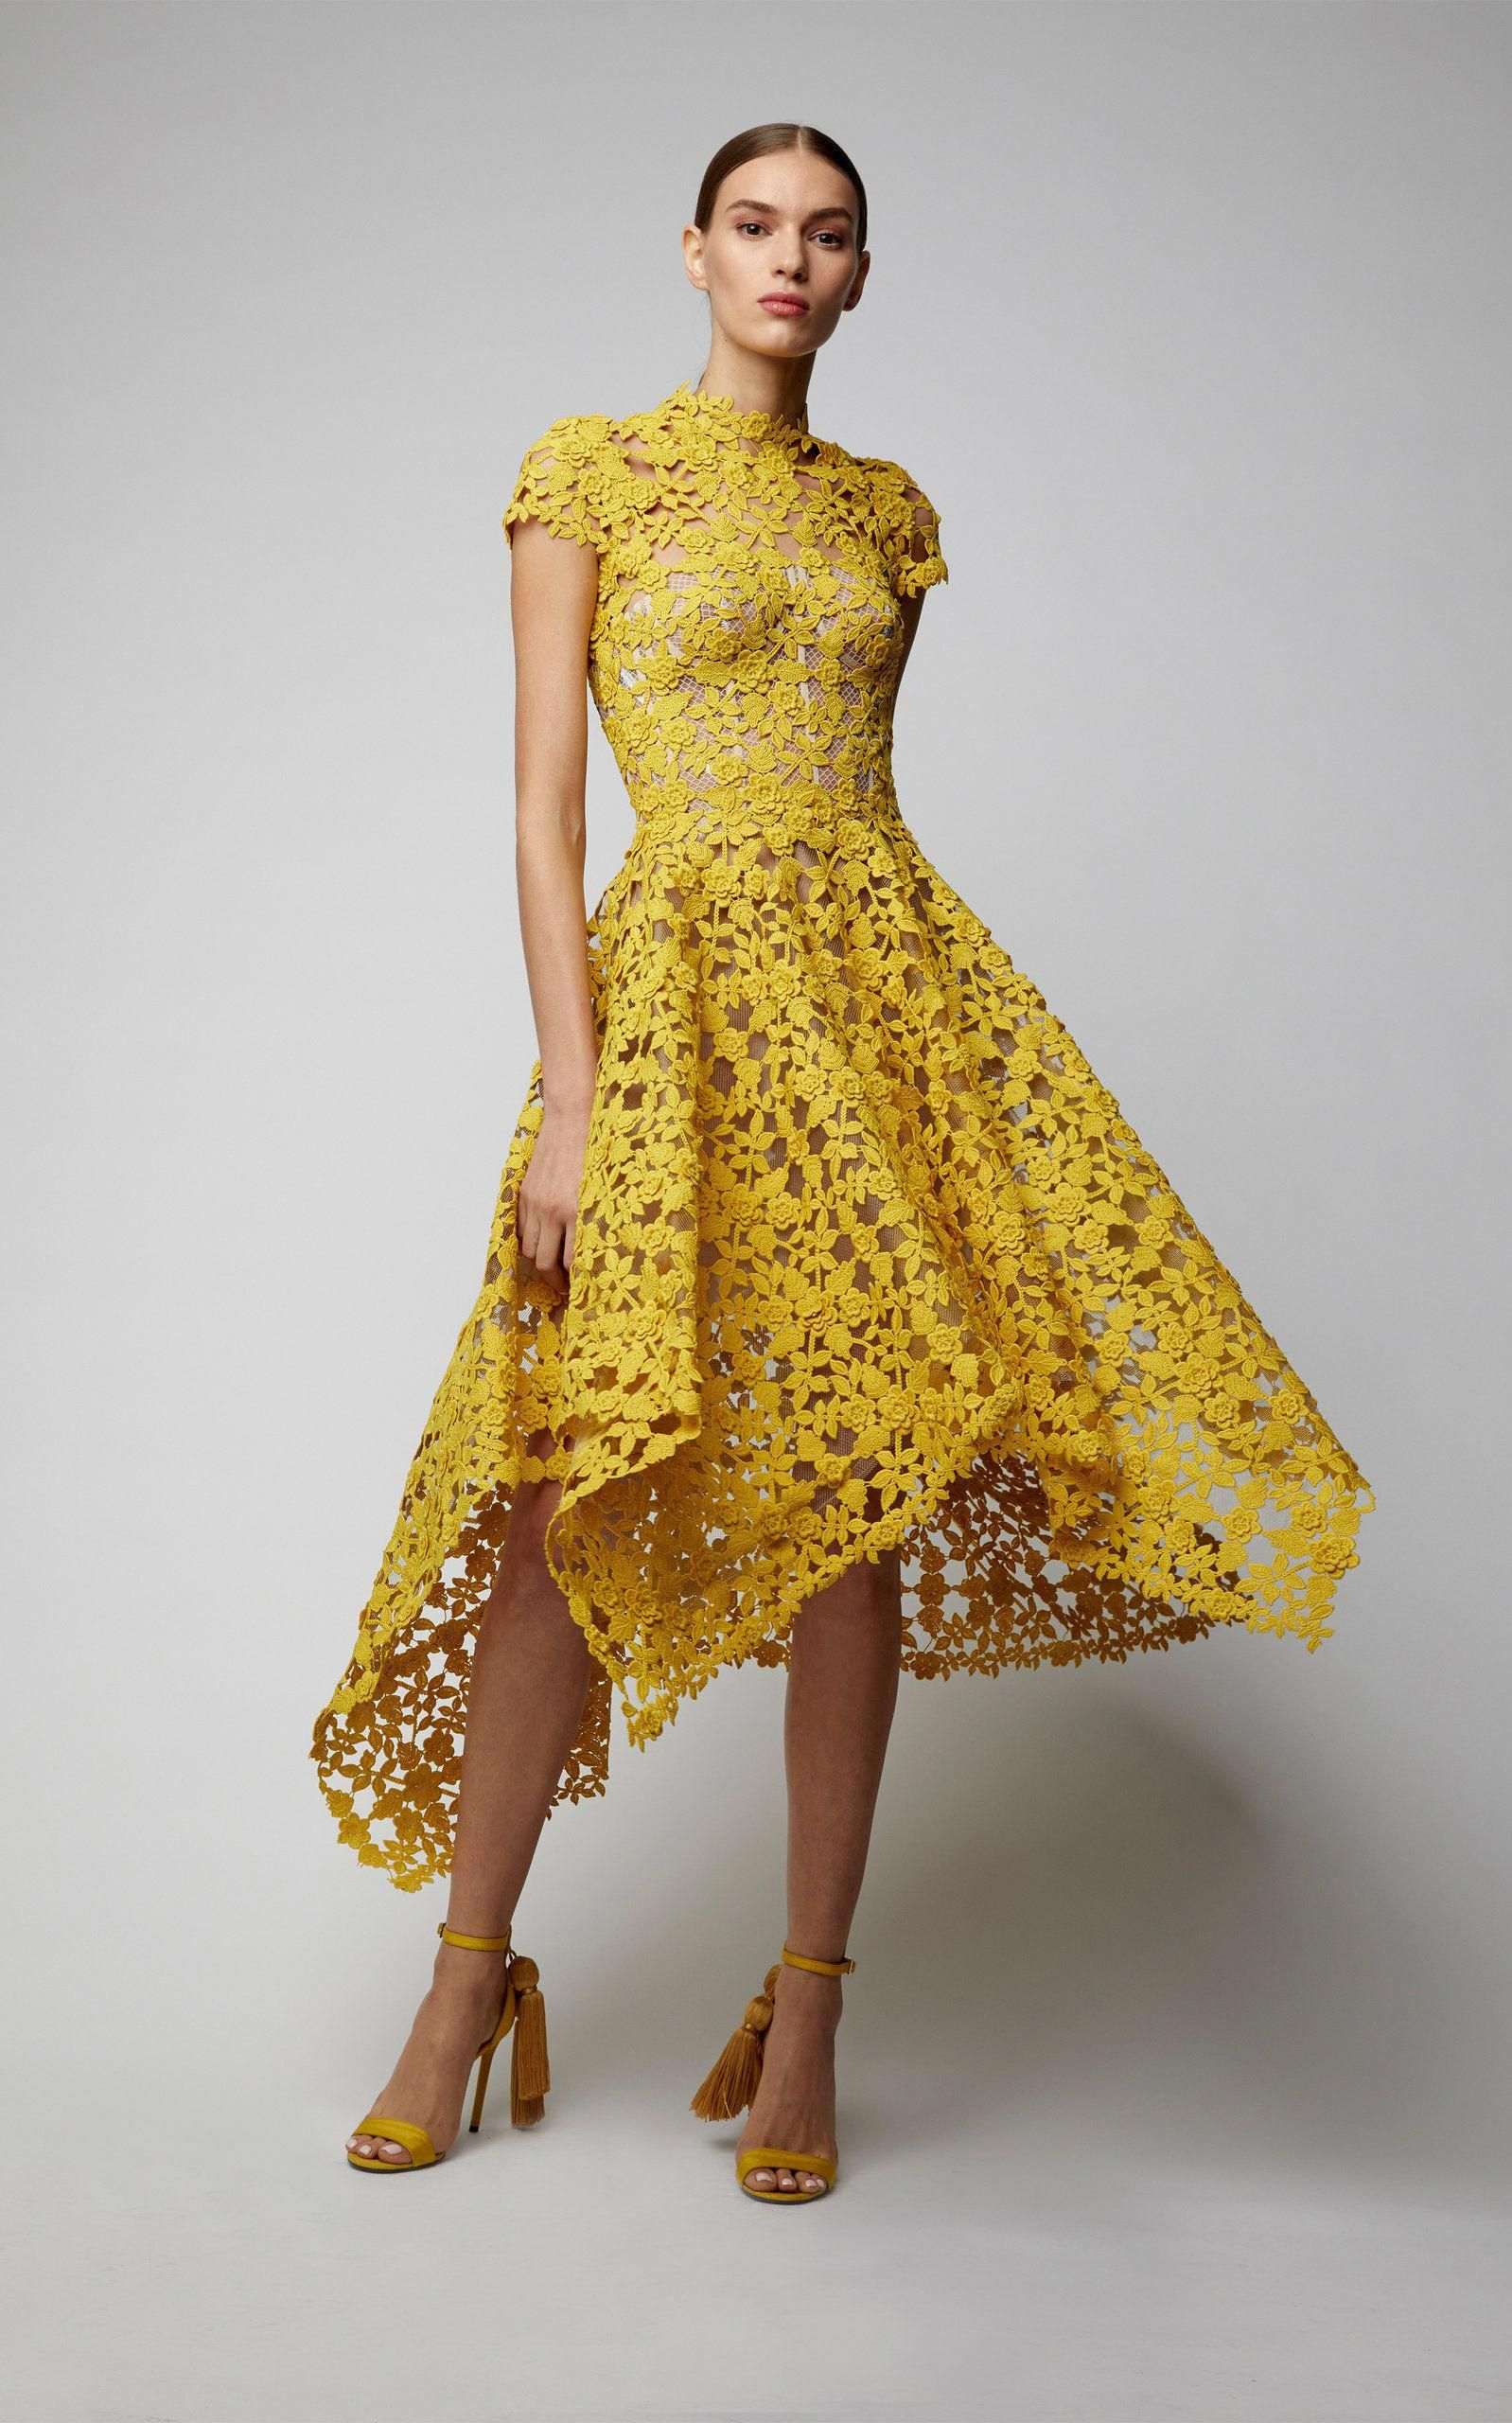 20++ Canary yellow lace dress ideas in 2021